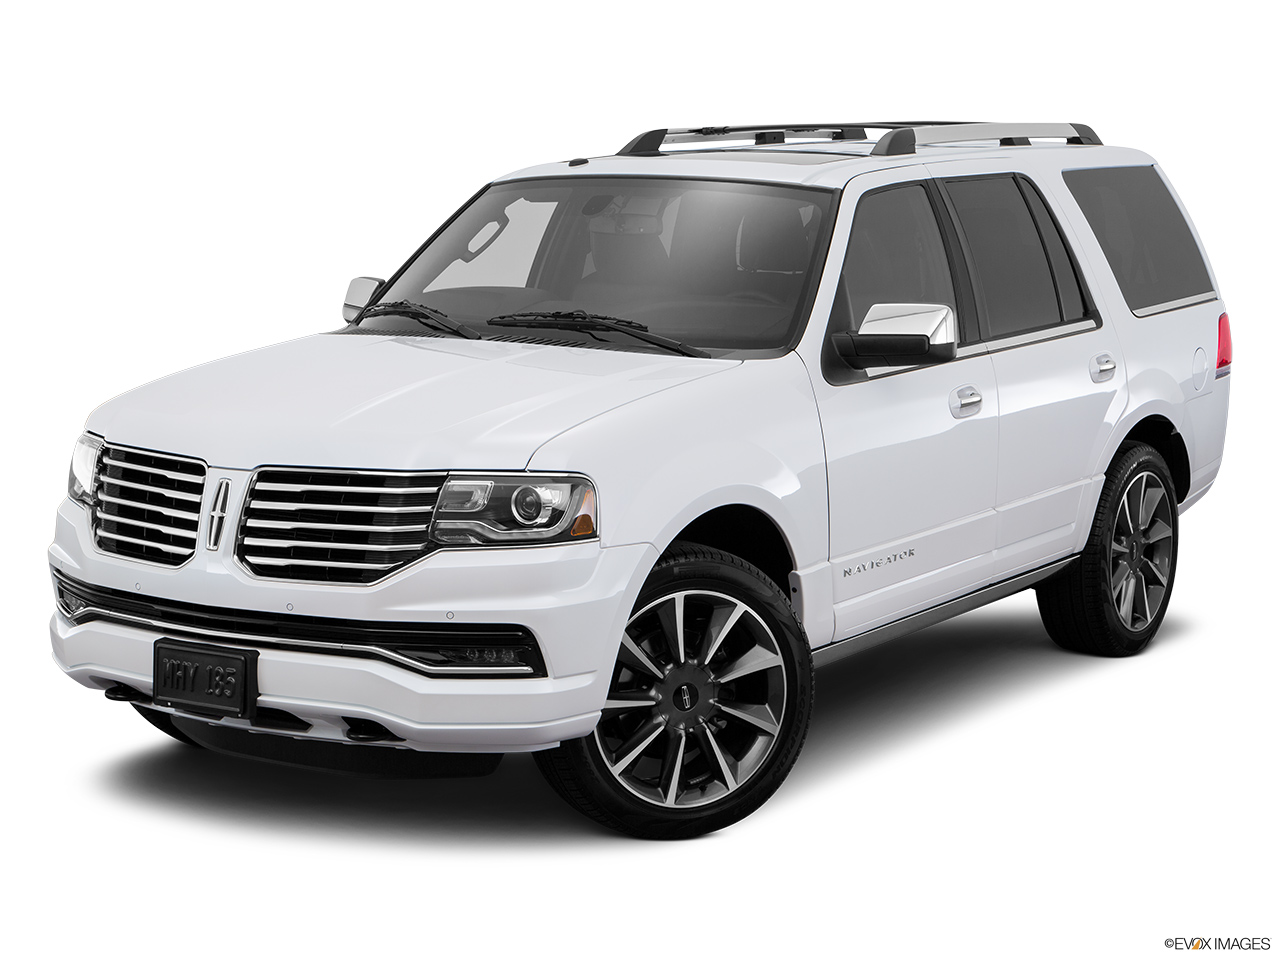 2016 Lincoln Navigator Reserve Front angle view.